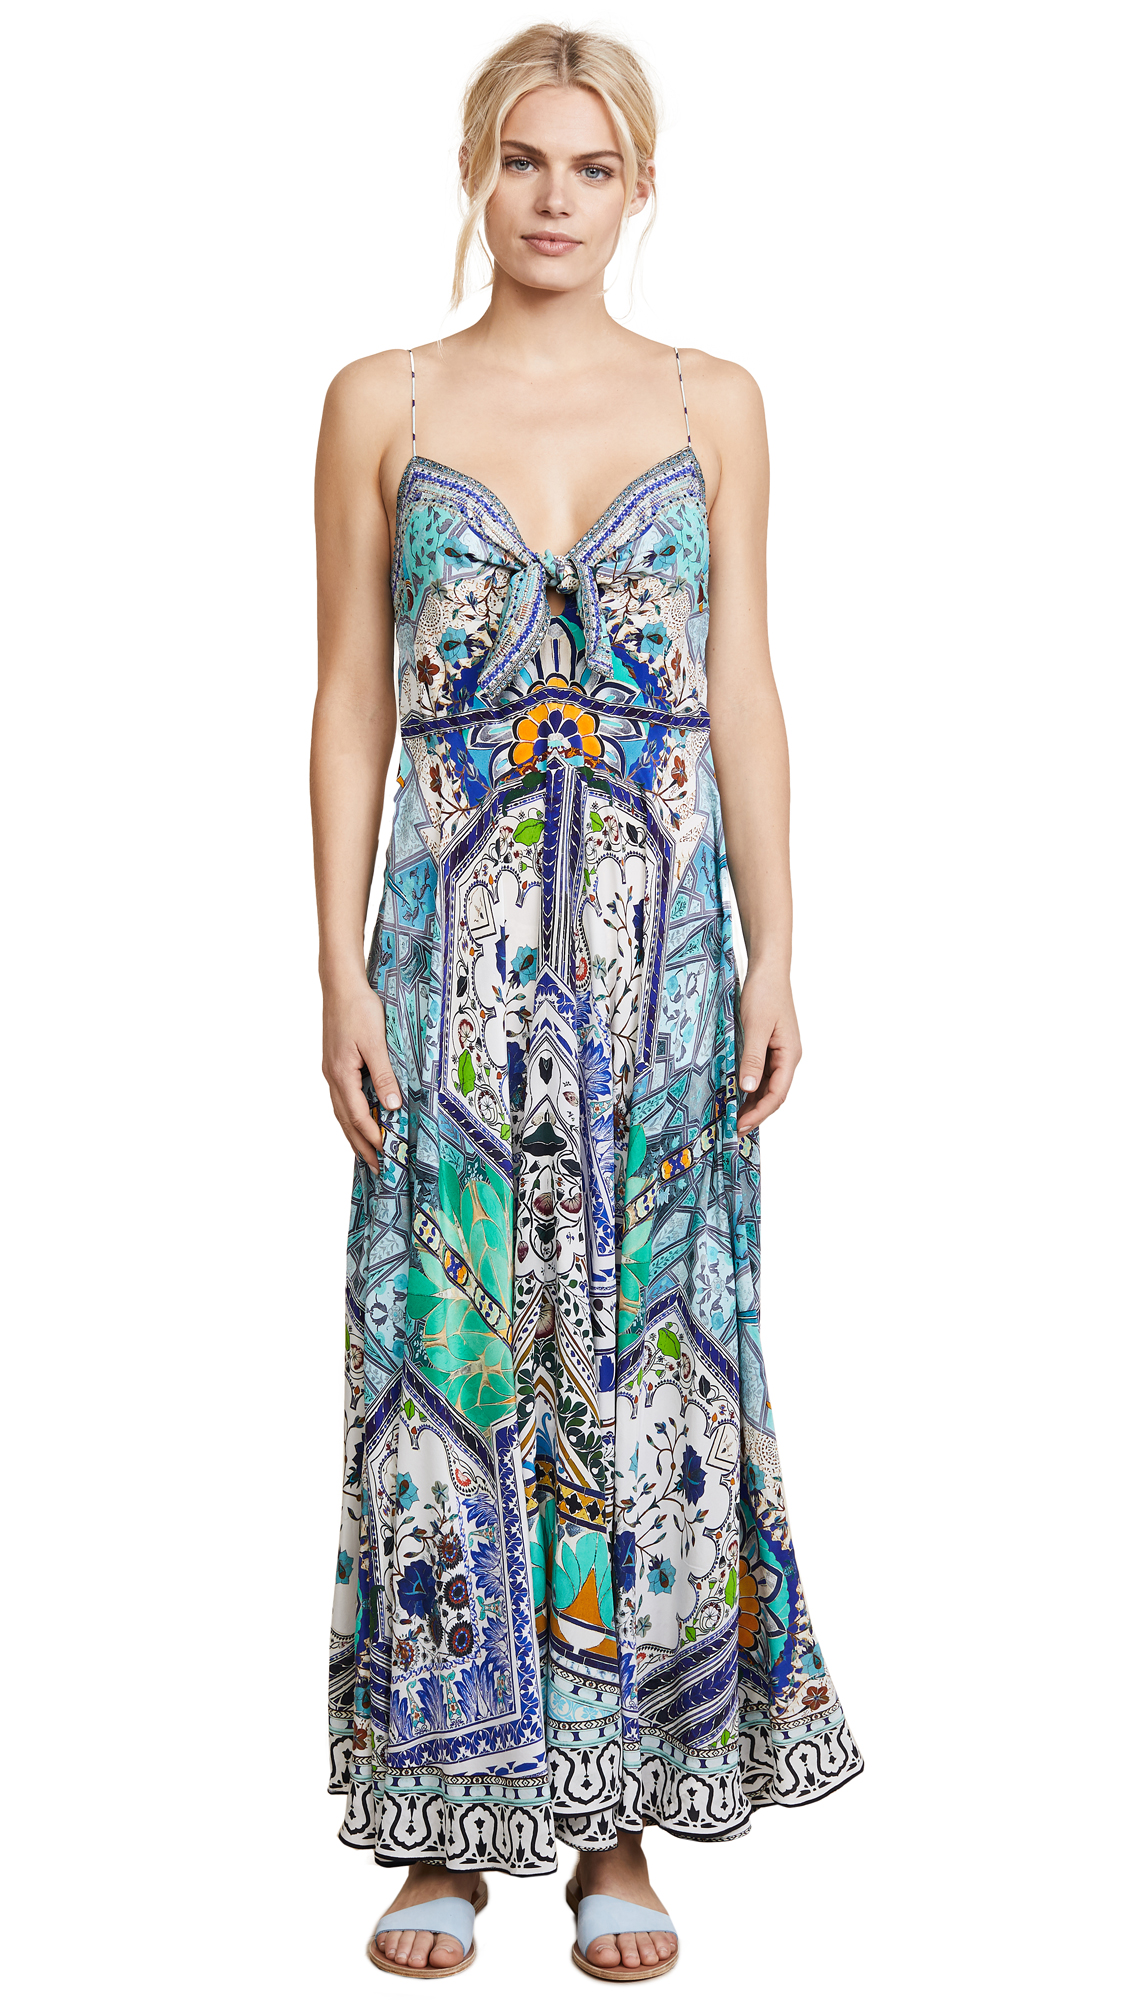 Camilla Everlasting Udaipur Tie Front Dress